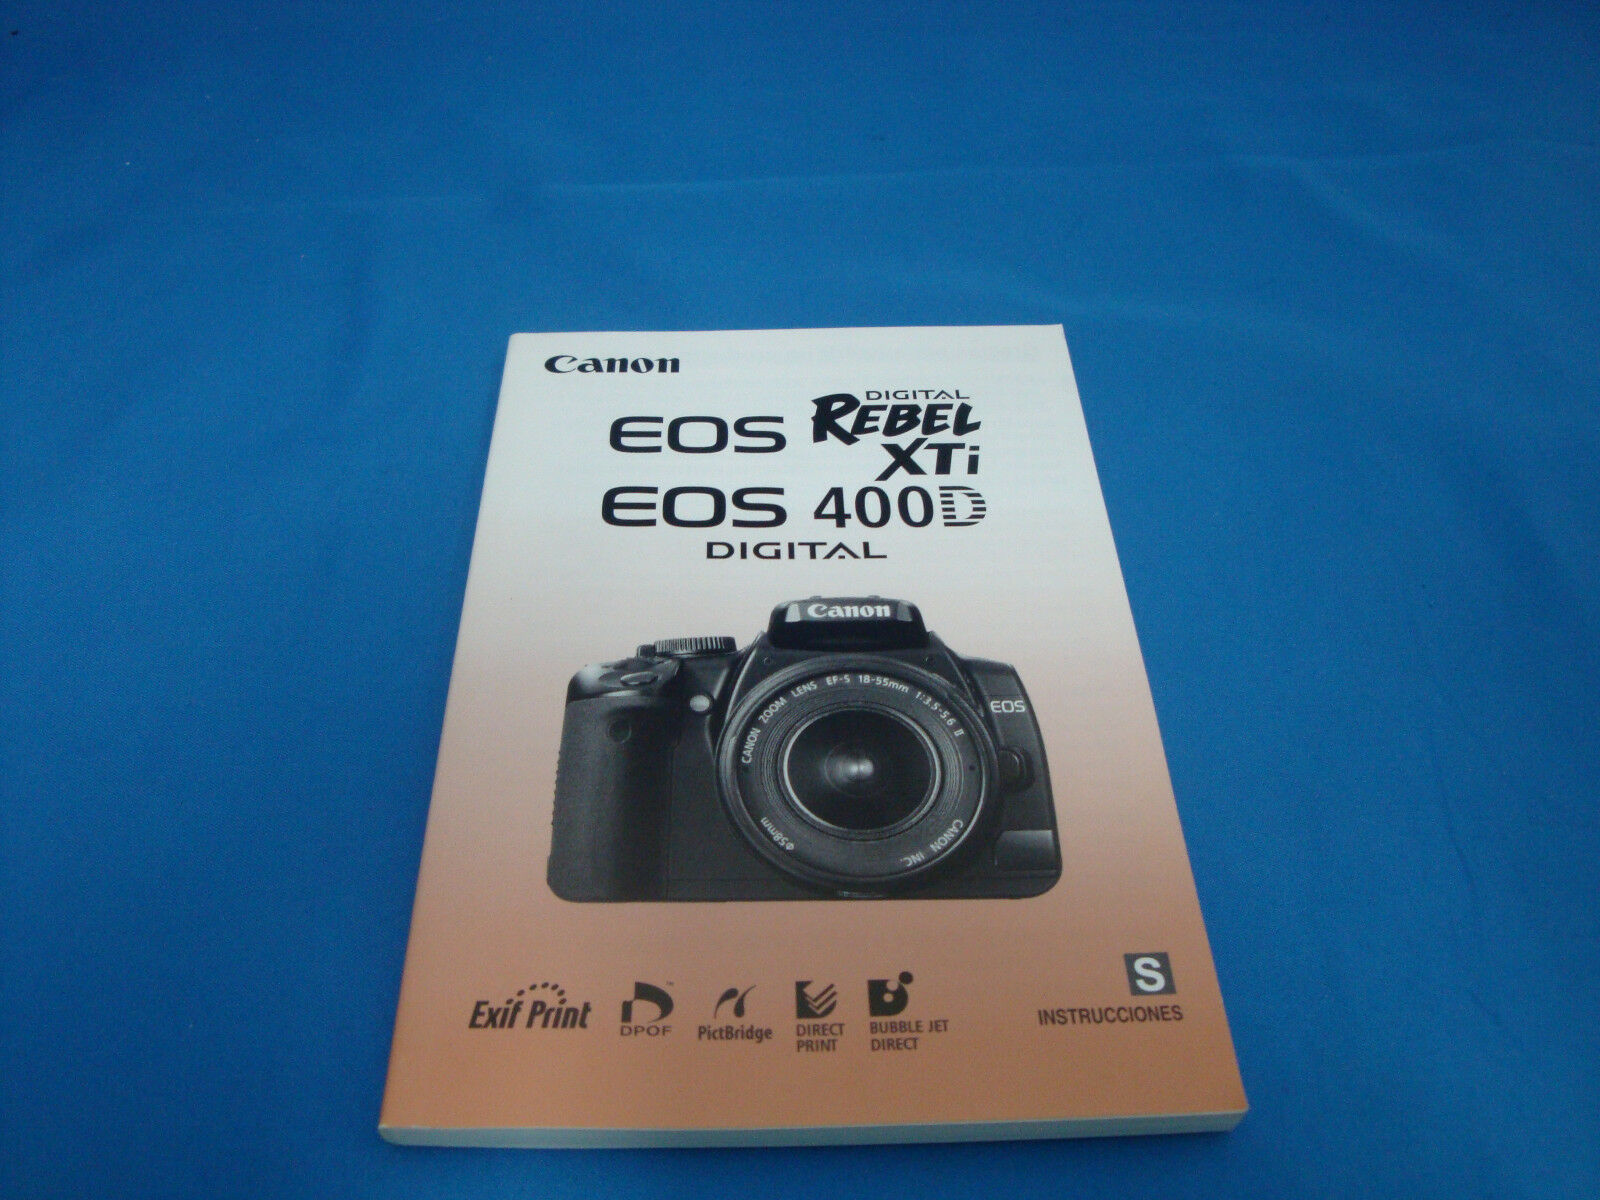 Canon Digital EOS REBEL XTi / 400D Spanish User Guid / Instruction Manual 1  of 1FREE Shipping ...